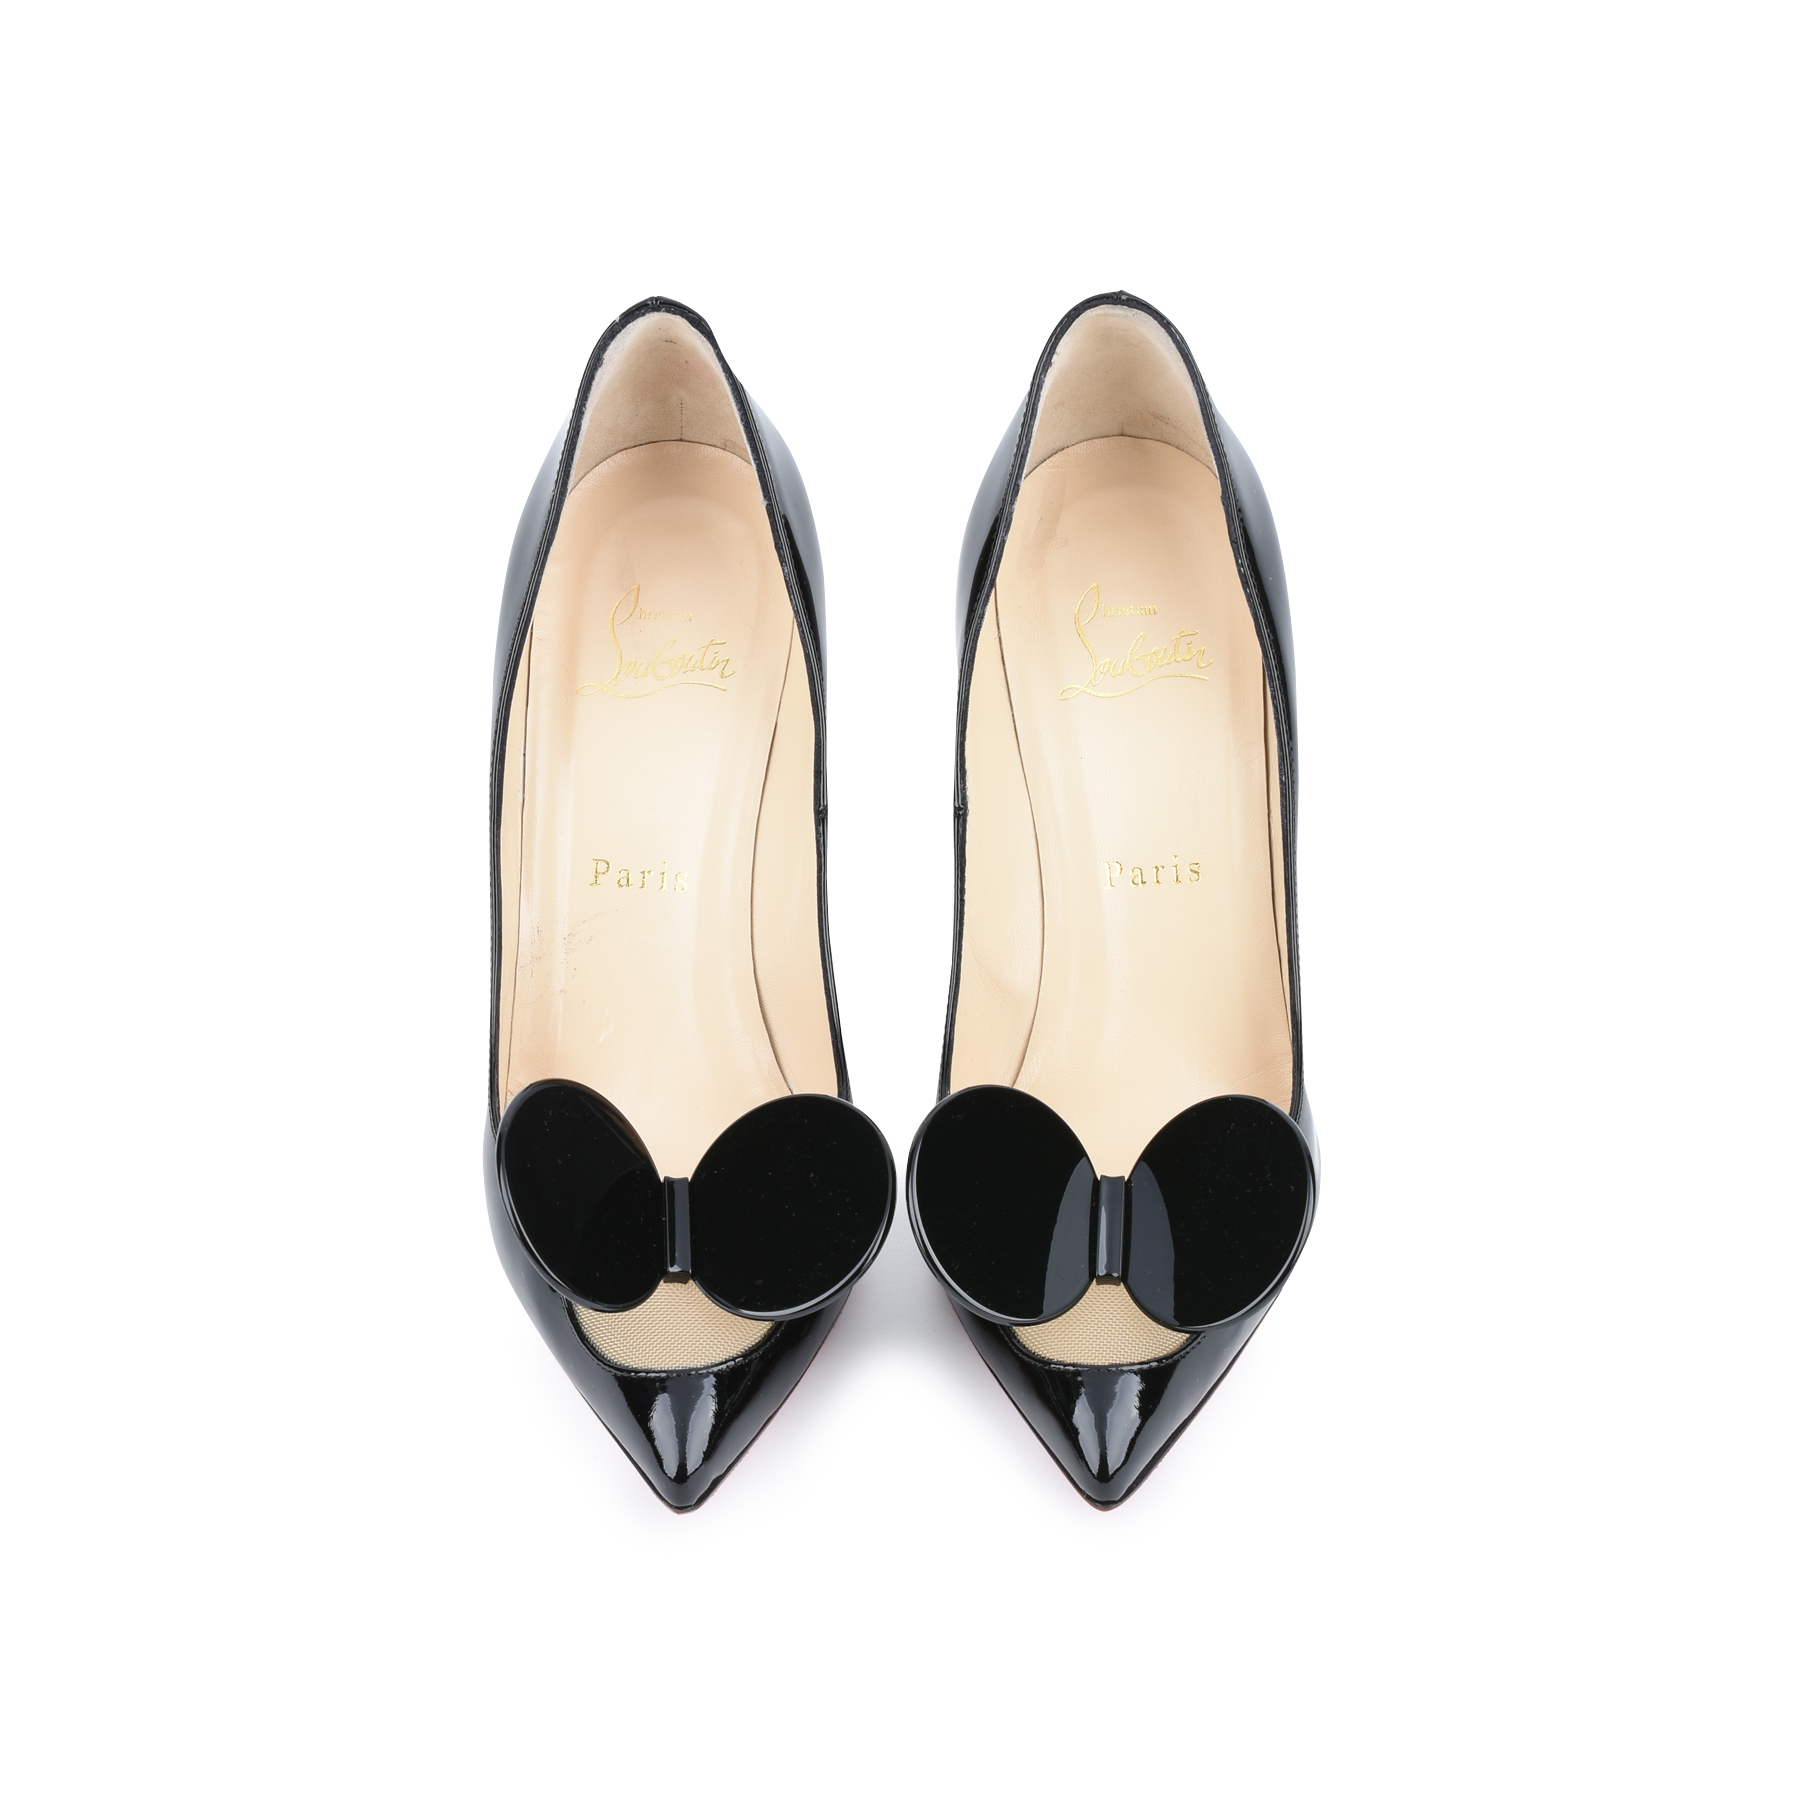 5b37e2586b7 Authentic Second Hand Christian Louboutin Madame Mouse Court Shoes  (PSS-420-00048)